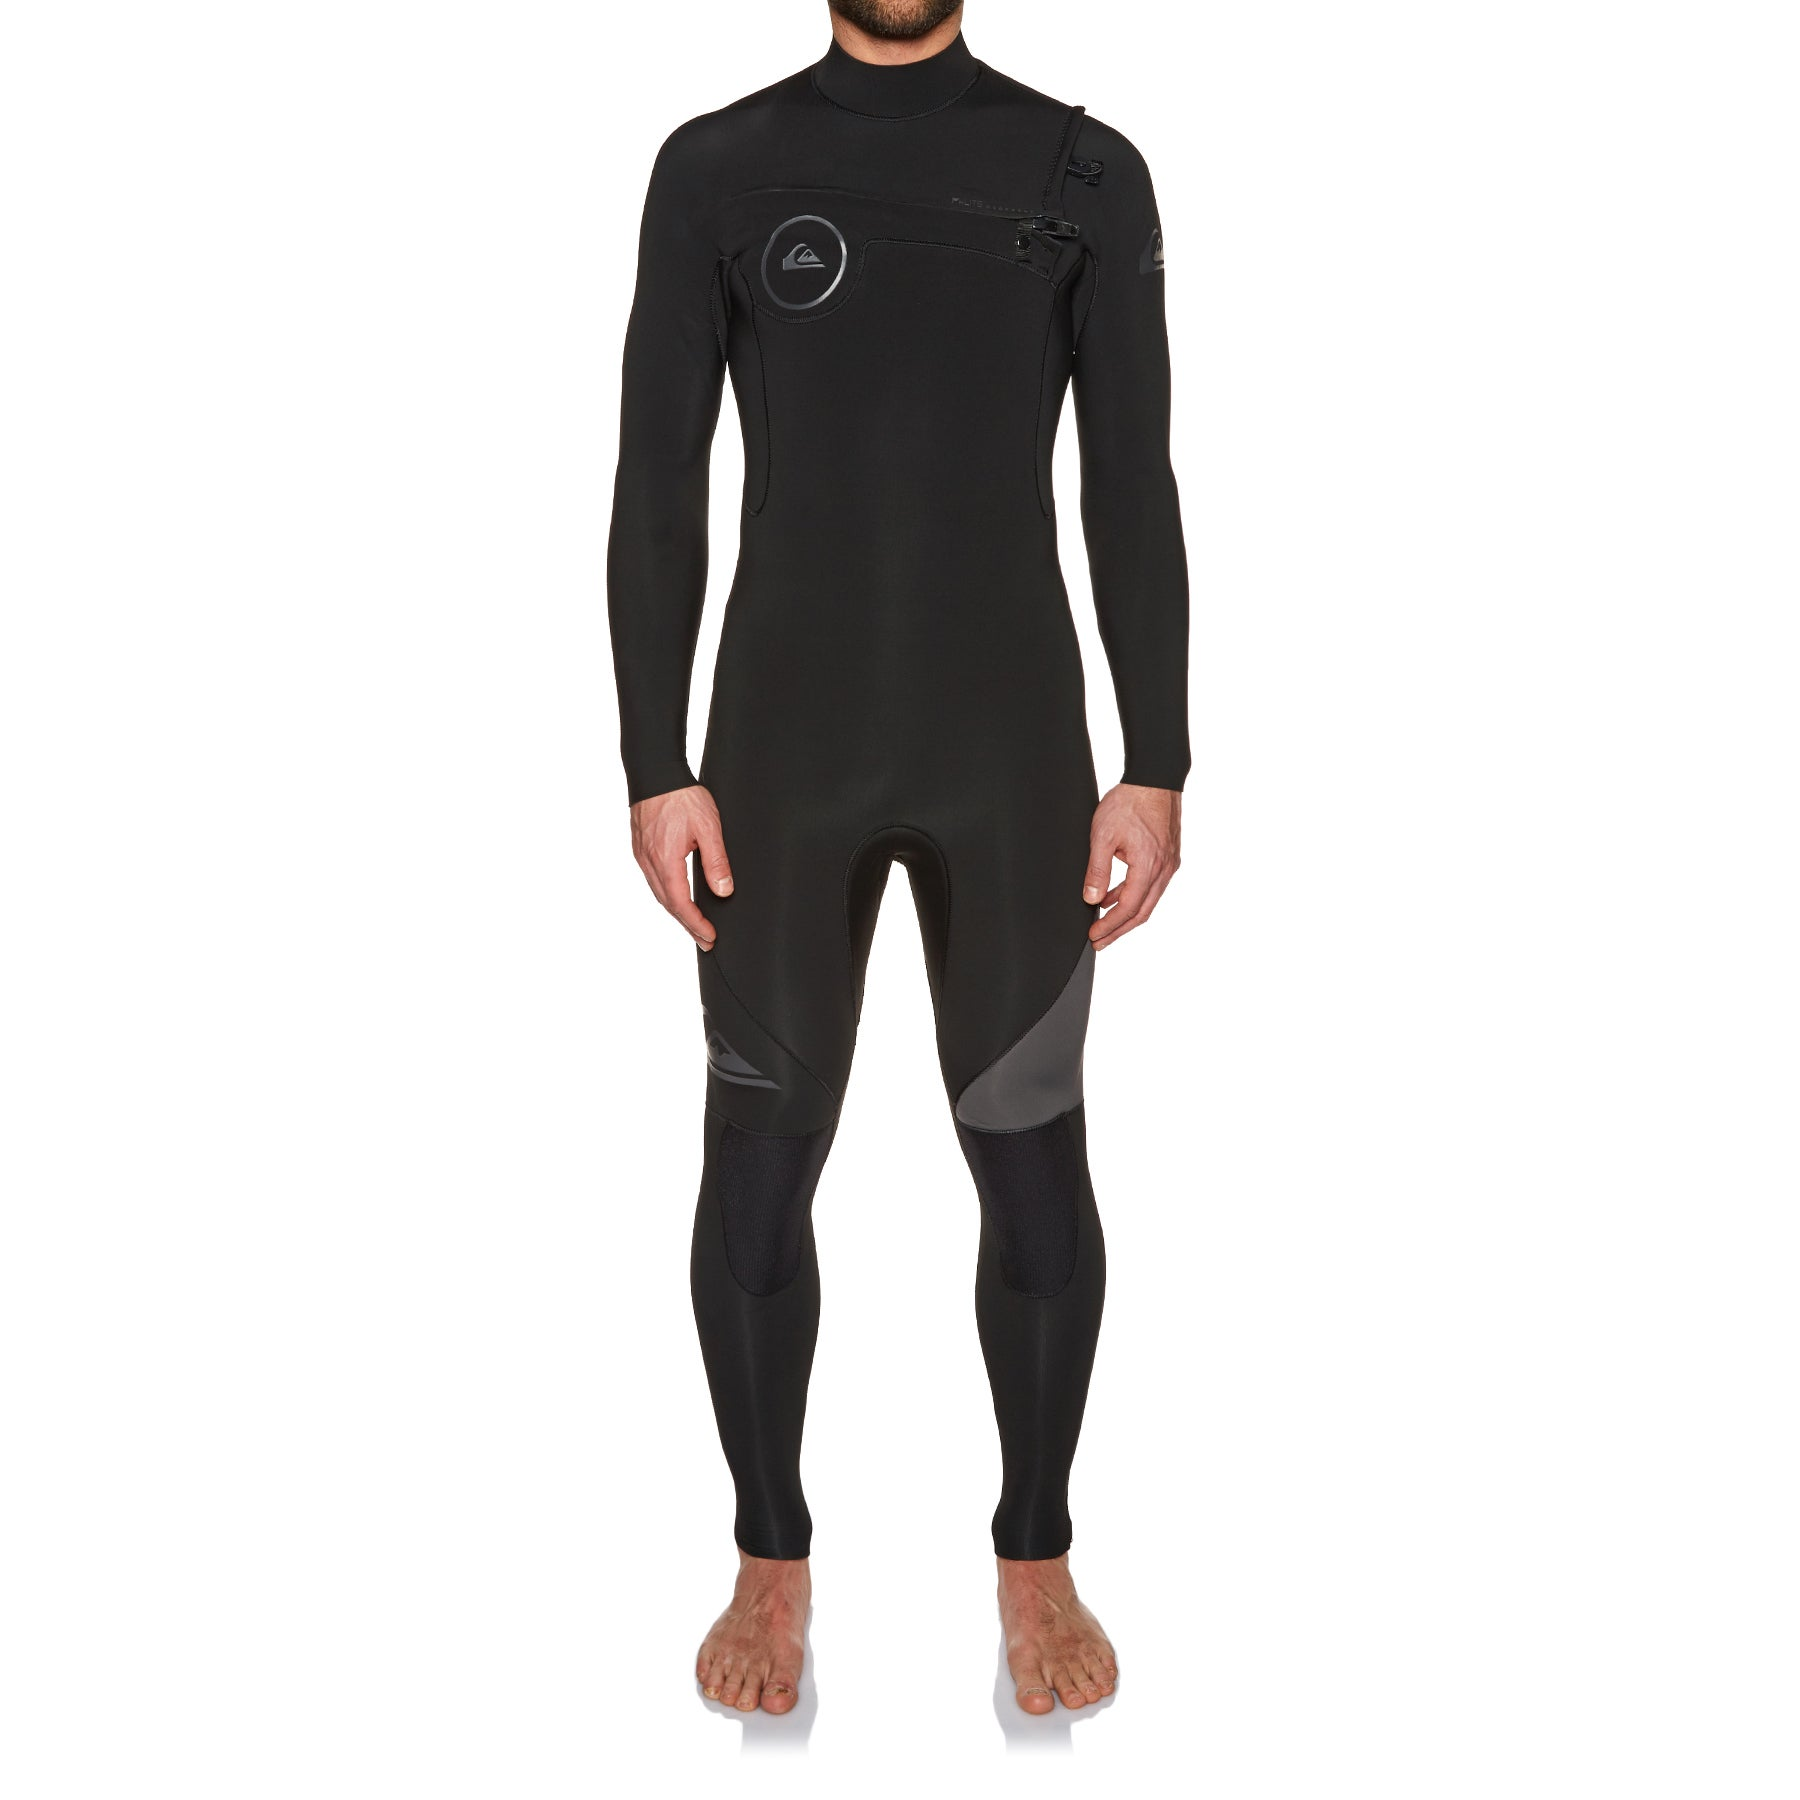 46998c64358 Traje de neopreno Quiksilver Syncro 3 2mm 2018 Chest Zip